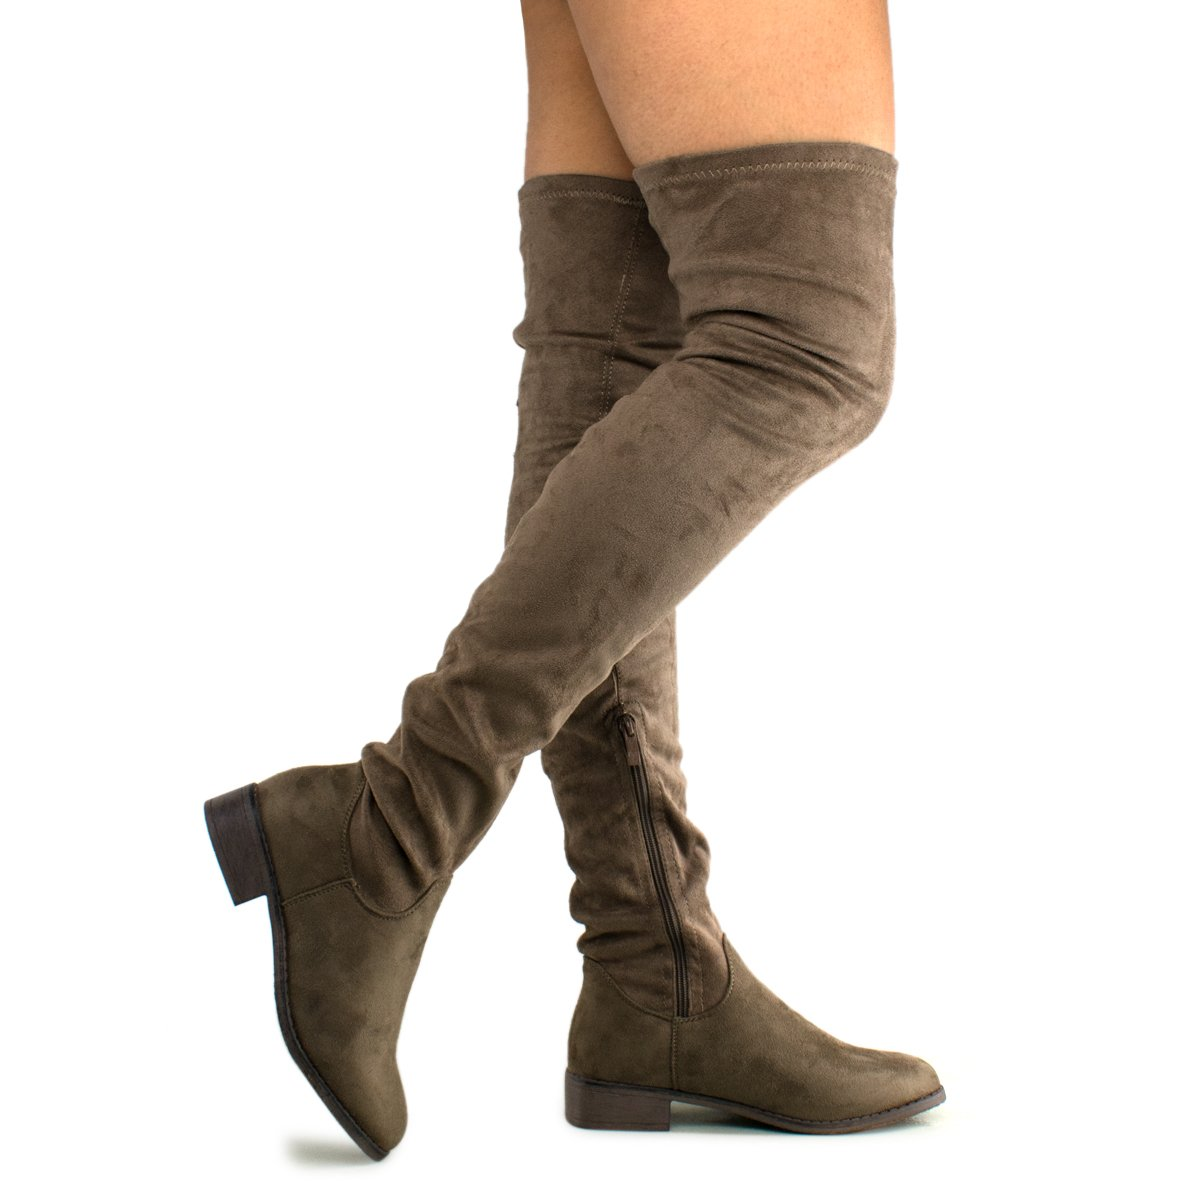 Women's Fashion Comfy Vegan Suede Block Heel Thigh High Over The Knee Boots, TPS Olympia-20 v3 Taupe Size 8